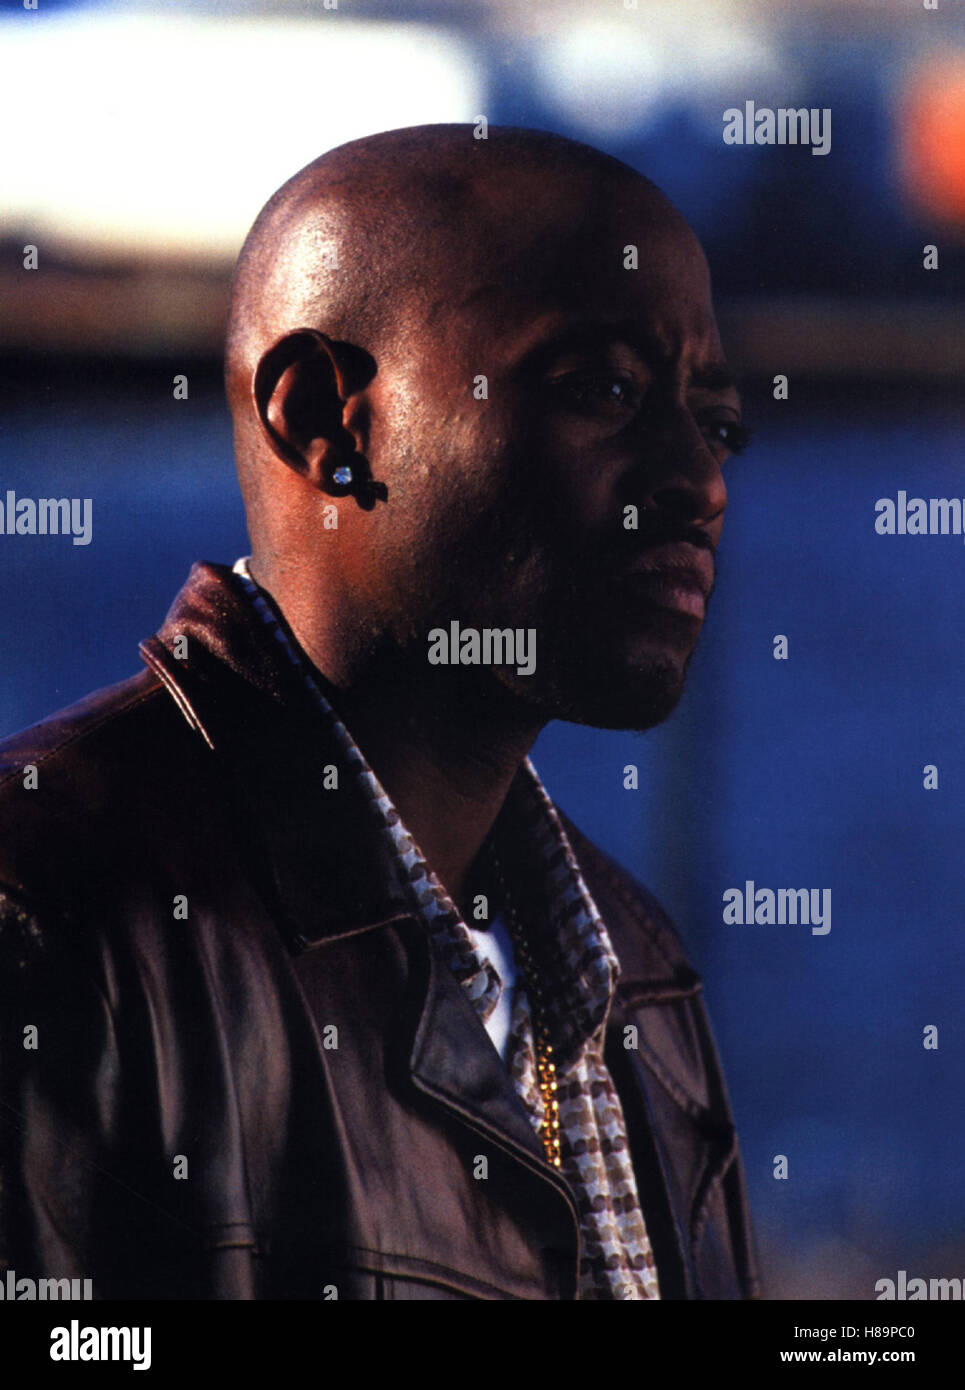 Under Cover - In Too Deep, (IN TOO DEEP) USA 1999, Regie: Michael Rymer, OMAR EPPS - Stock Image